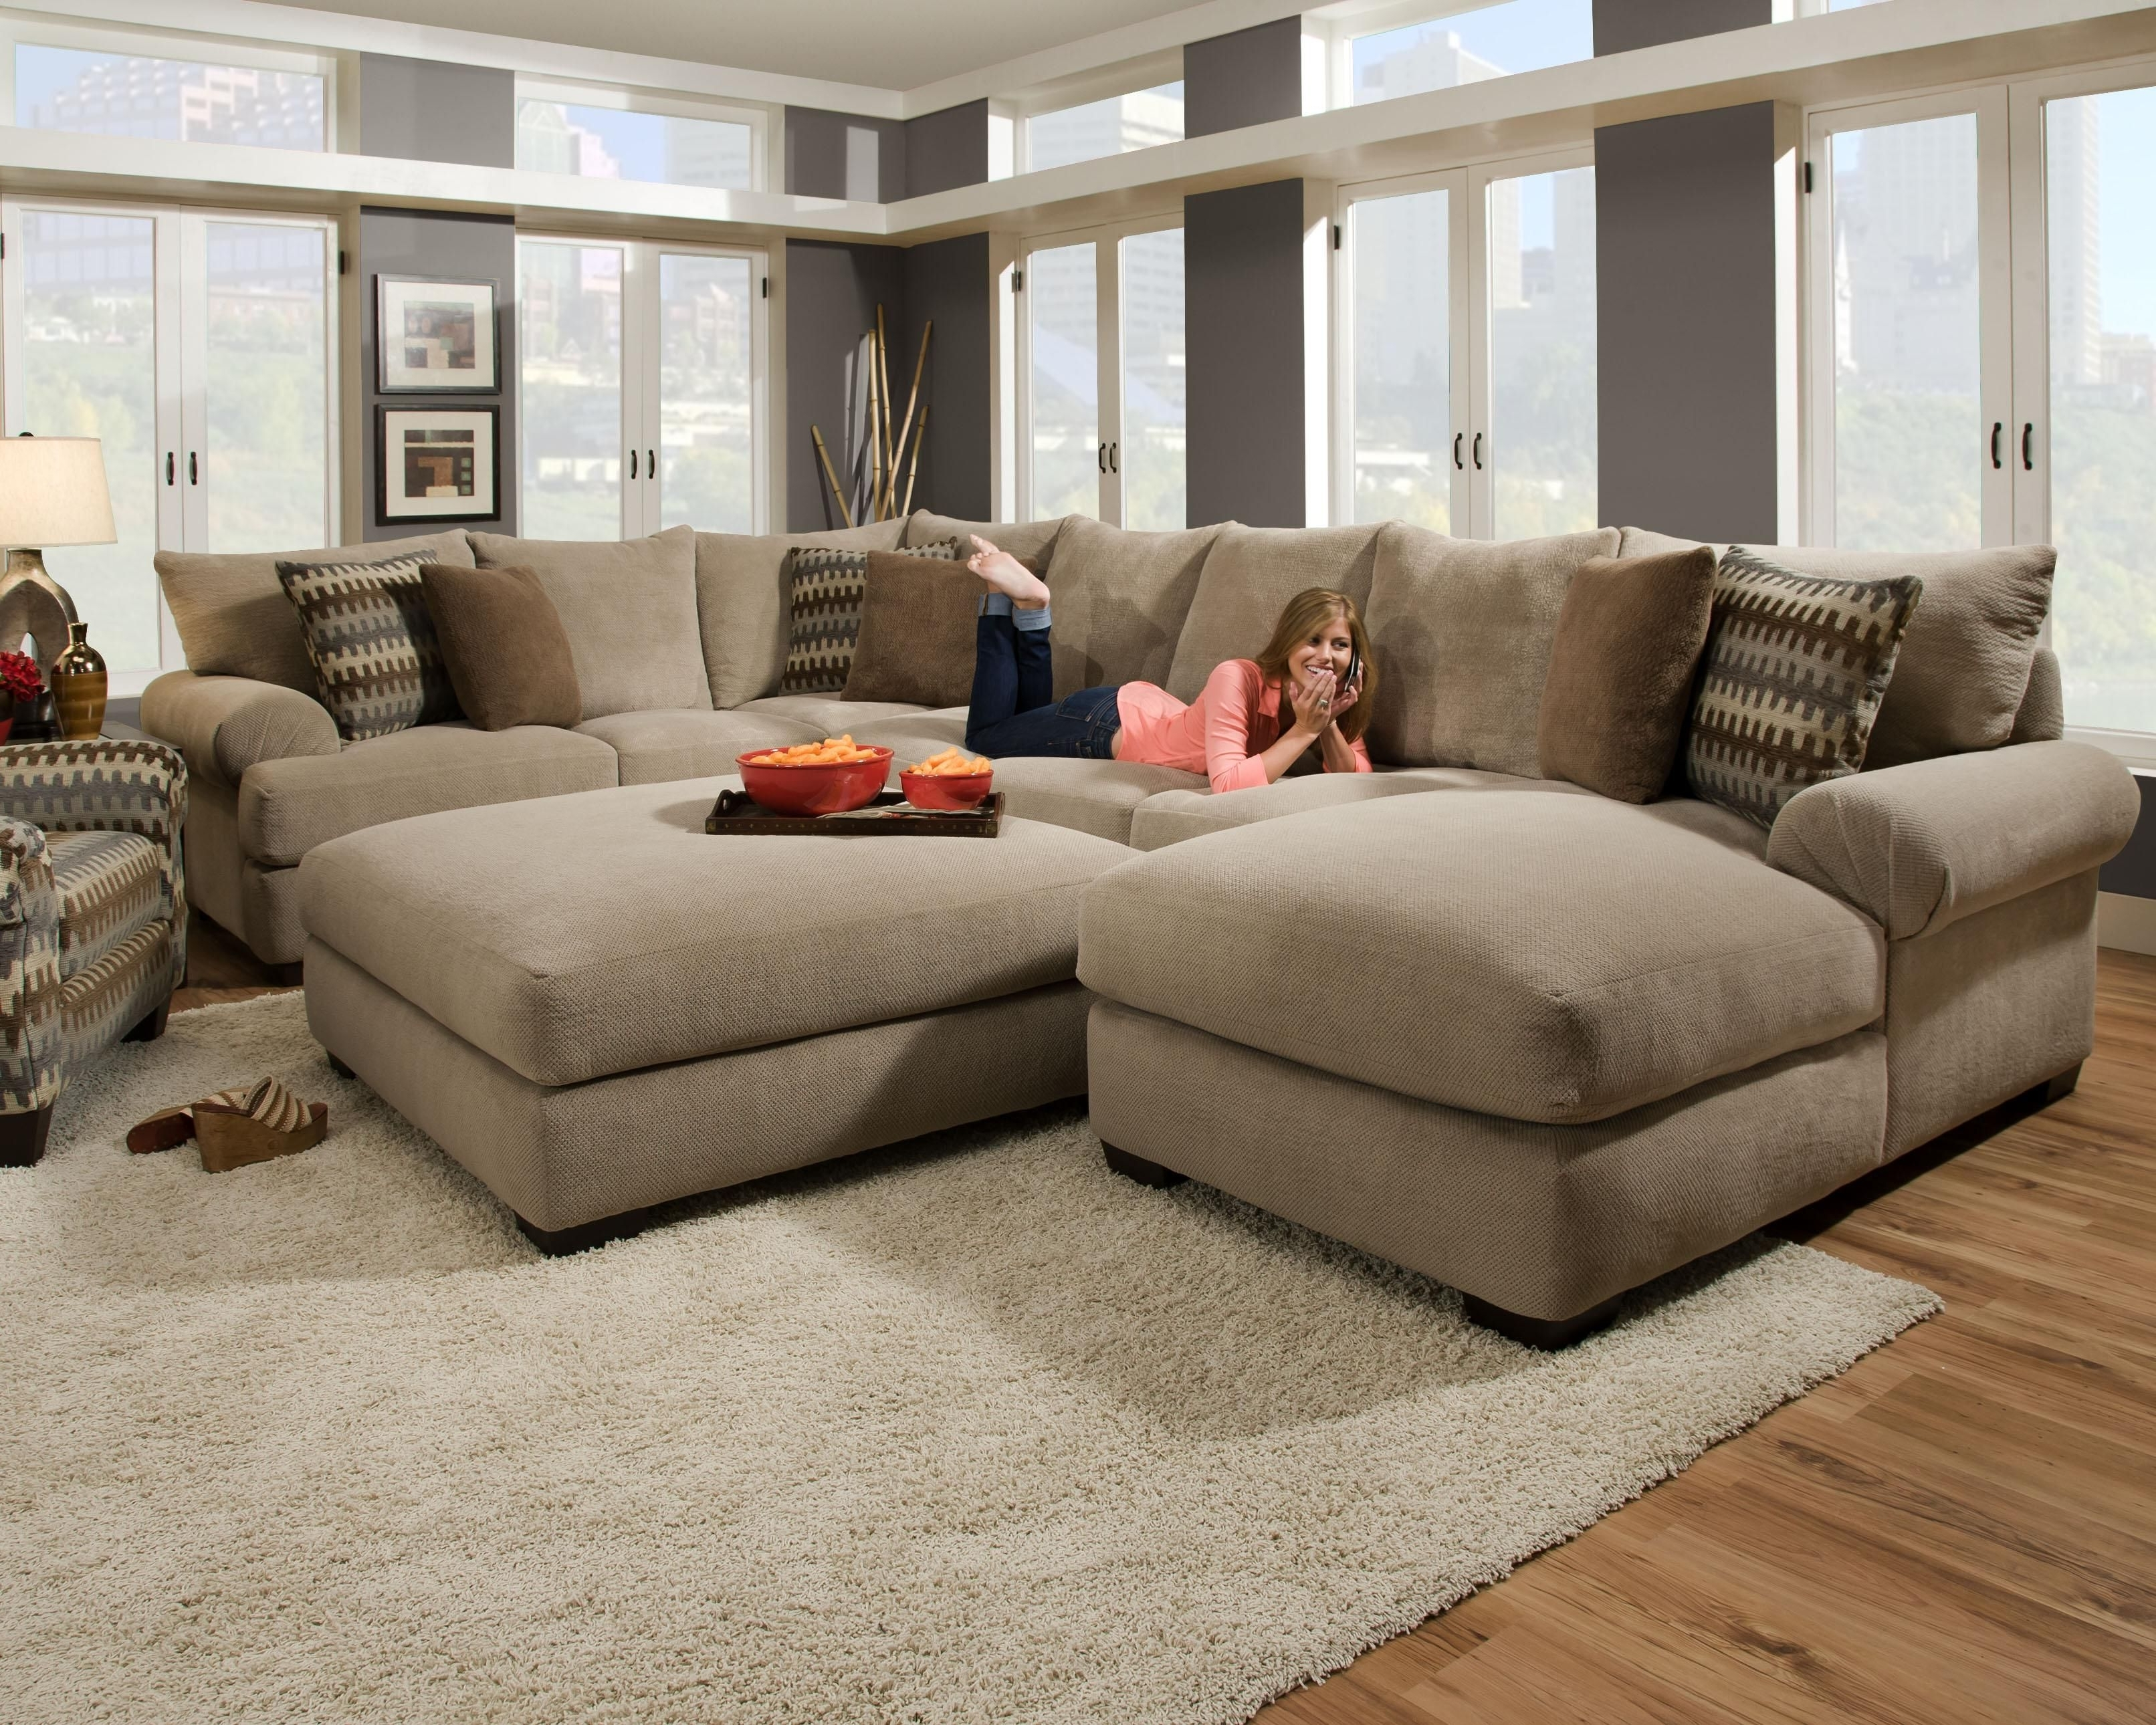 2019 Couches With Large Ottoman Inside Nice Oversized Couch , Epic Oversized Couch 78 For Your (View 11 of 20)